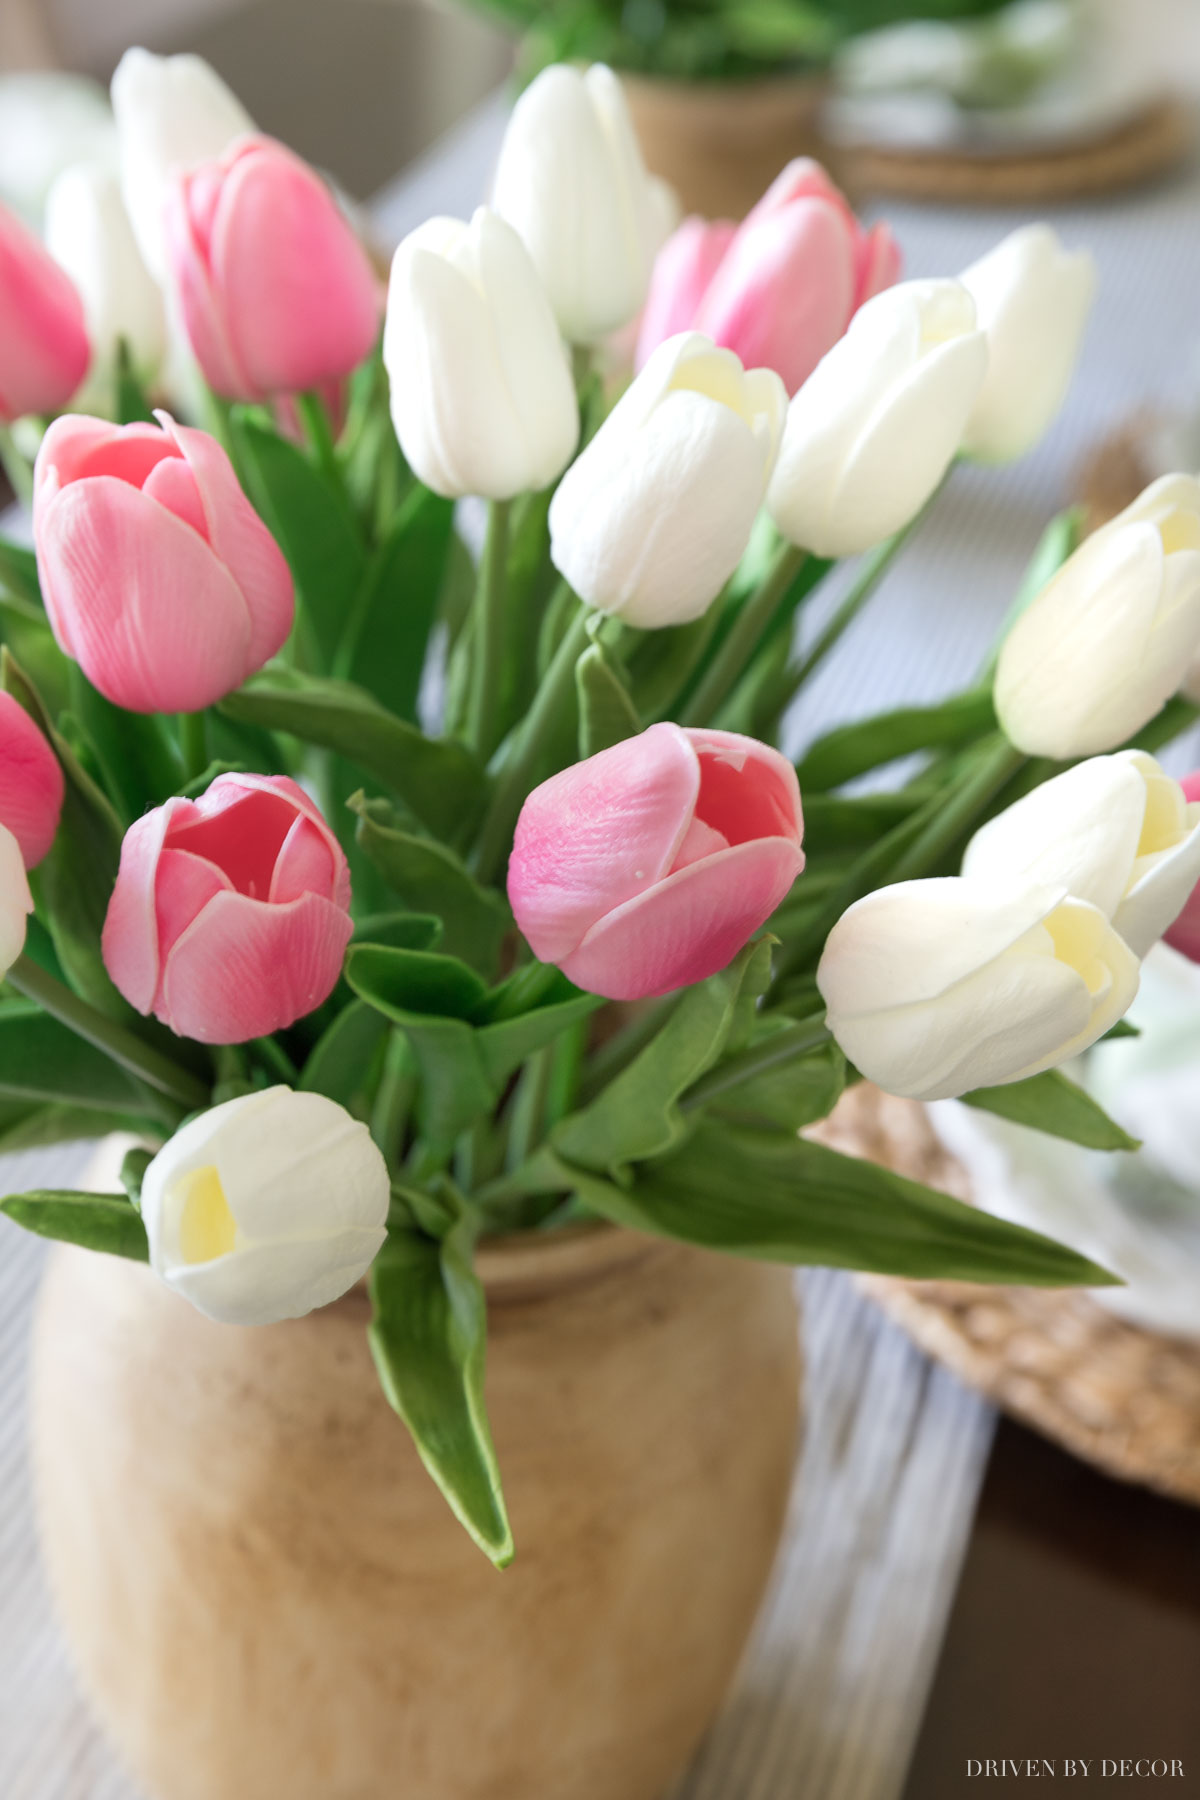 These tulips look SO realistic! You'd never guess they are artificial flowers!